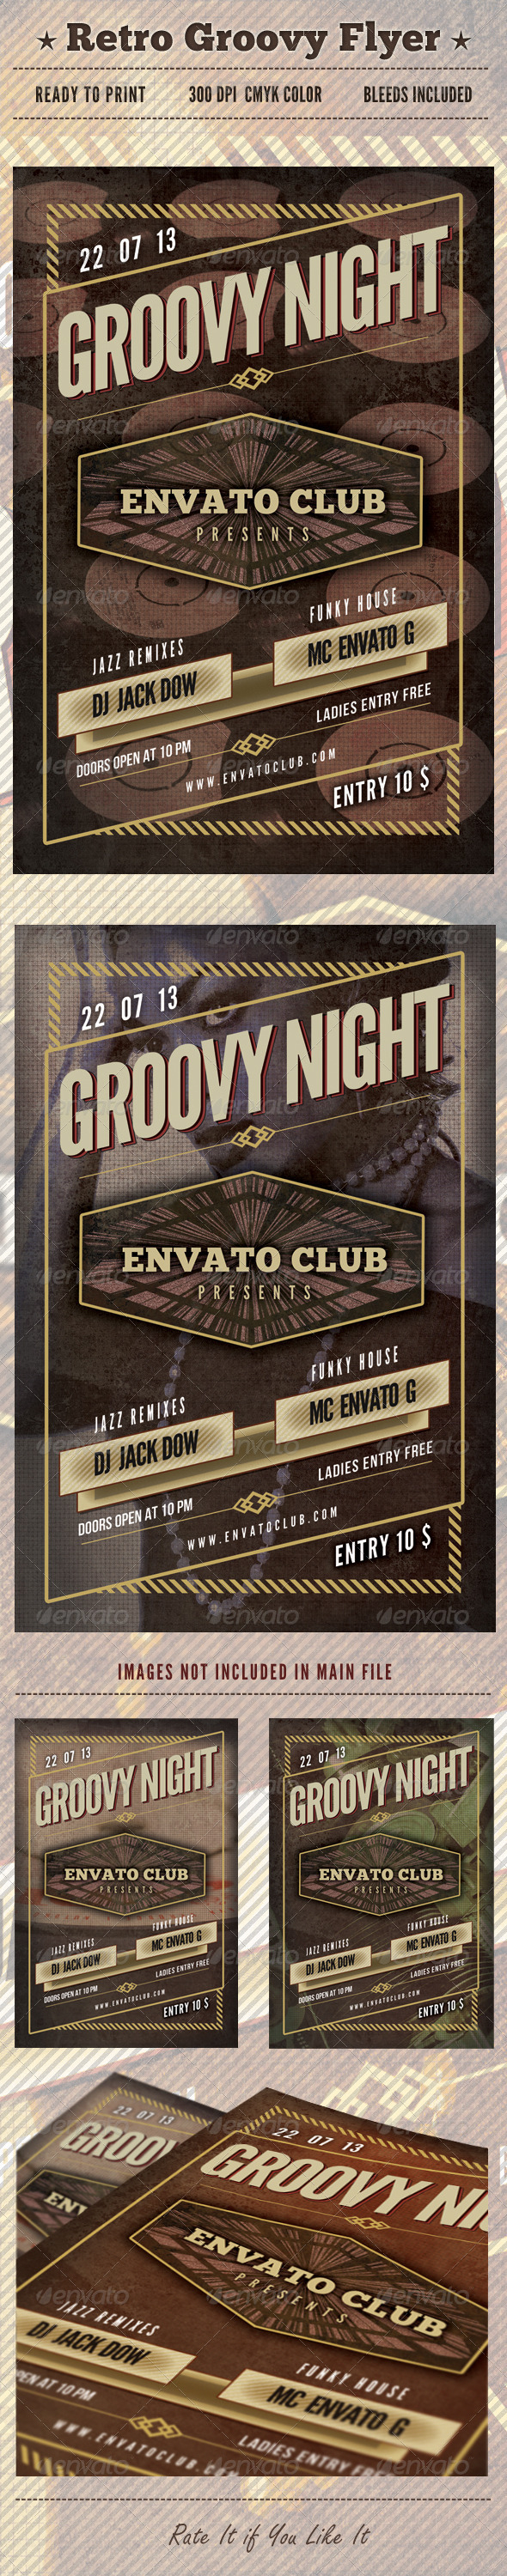 Retro Groovy Flyer - Clubs & Parties Events